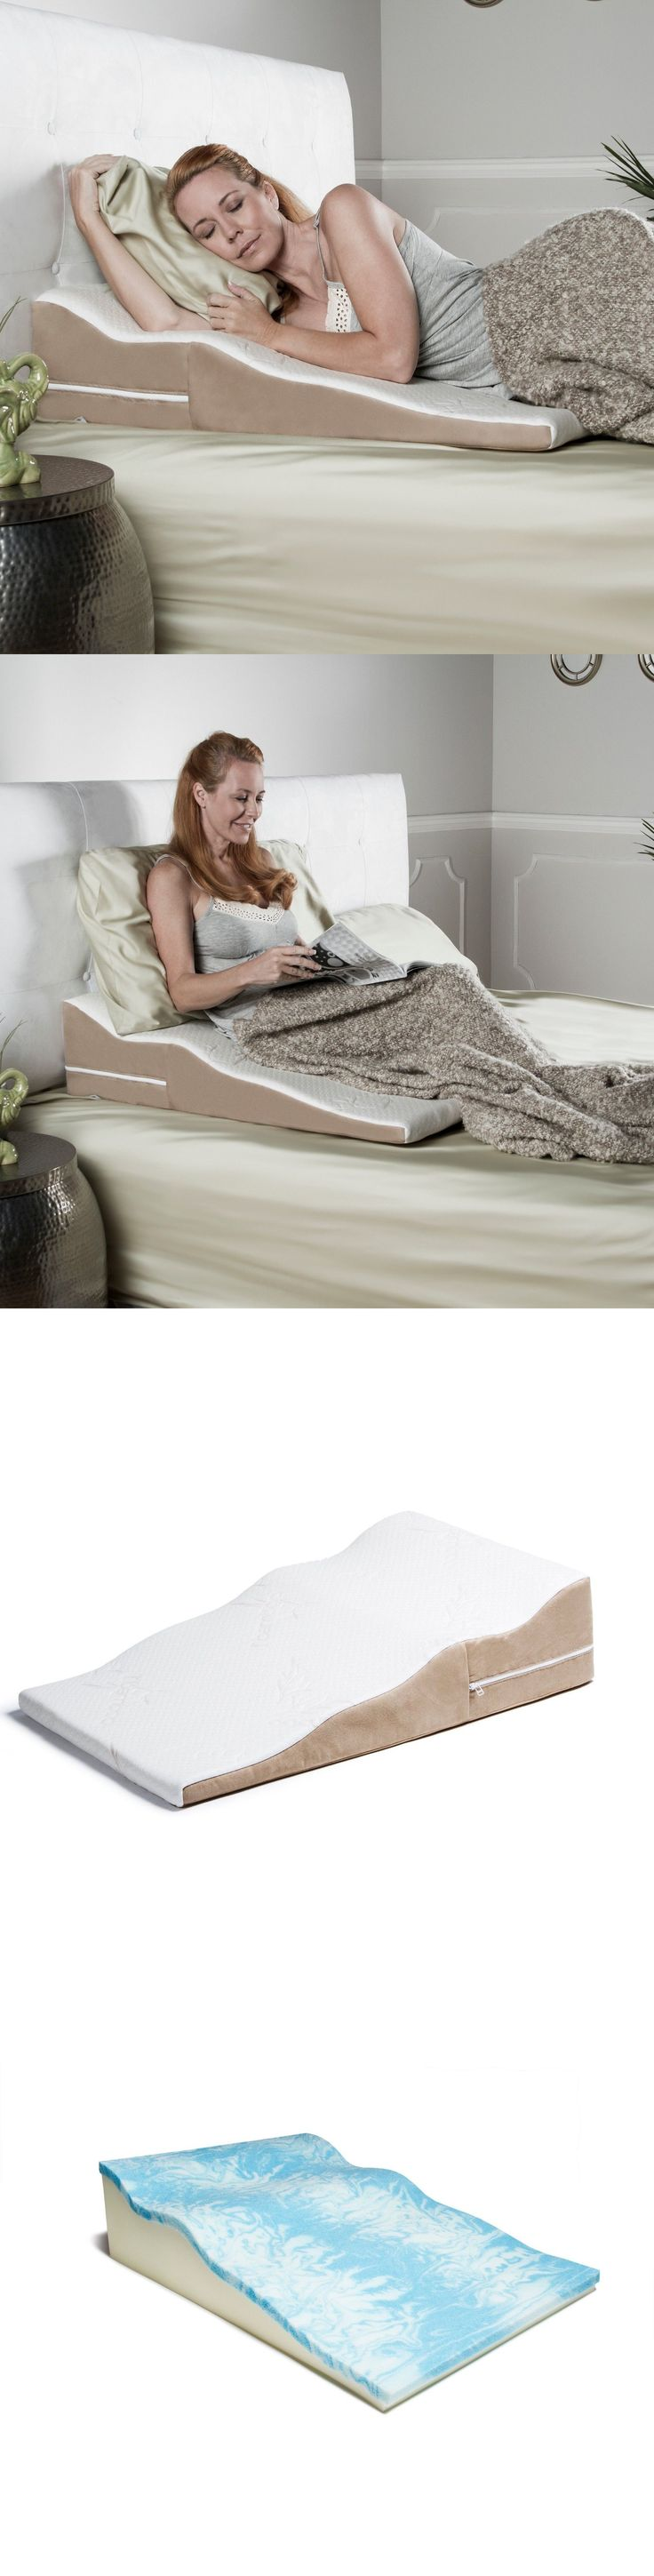 Bed wedge under mattress - Wedges And Bed Positioners Avana Contoured Bed Wedge Pillow With Cool Gel Memory Foam And